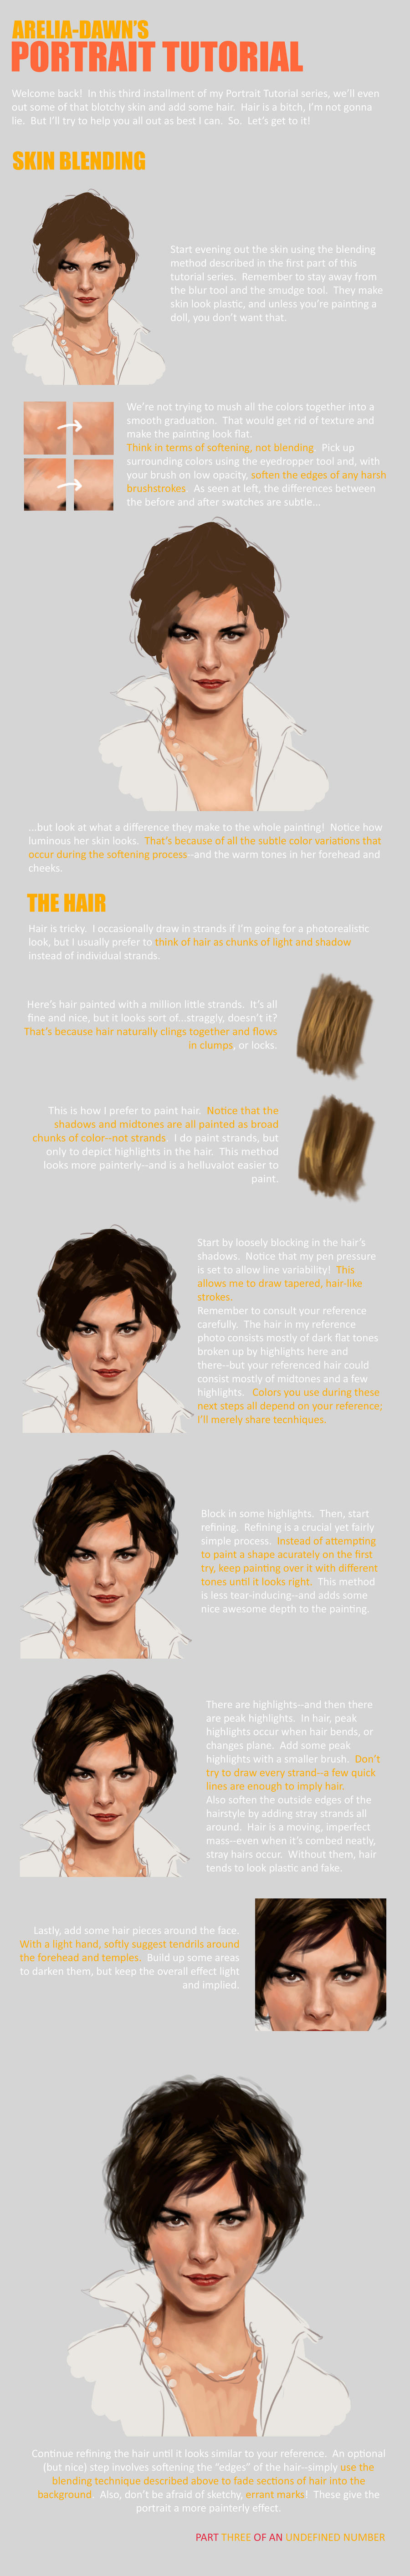 Portrait Tutorial, Part Three by arelia-dawn